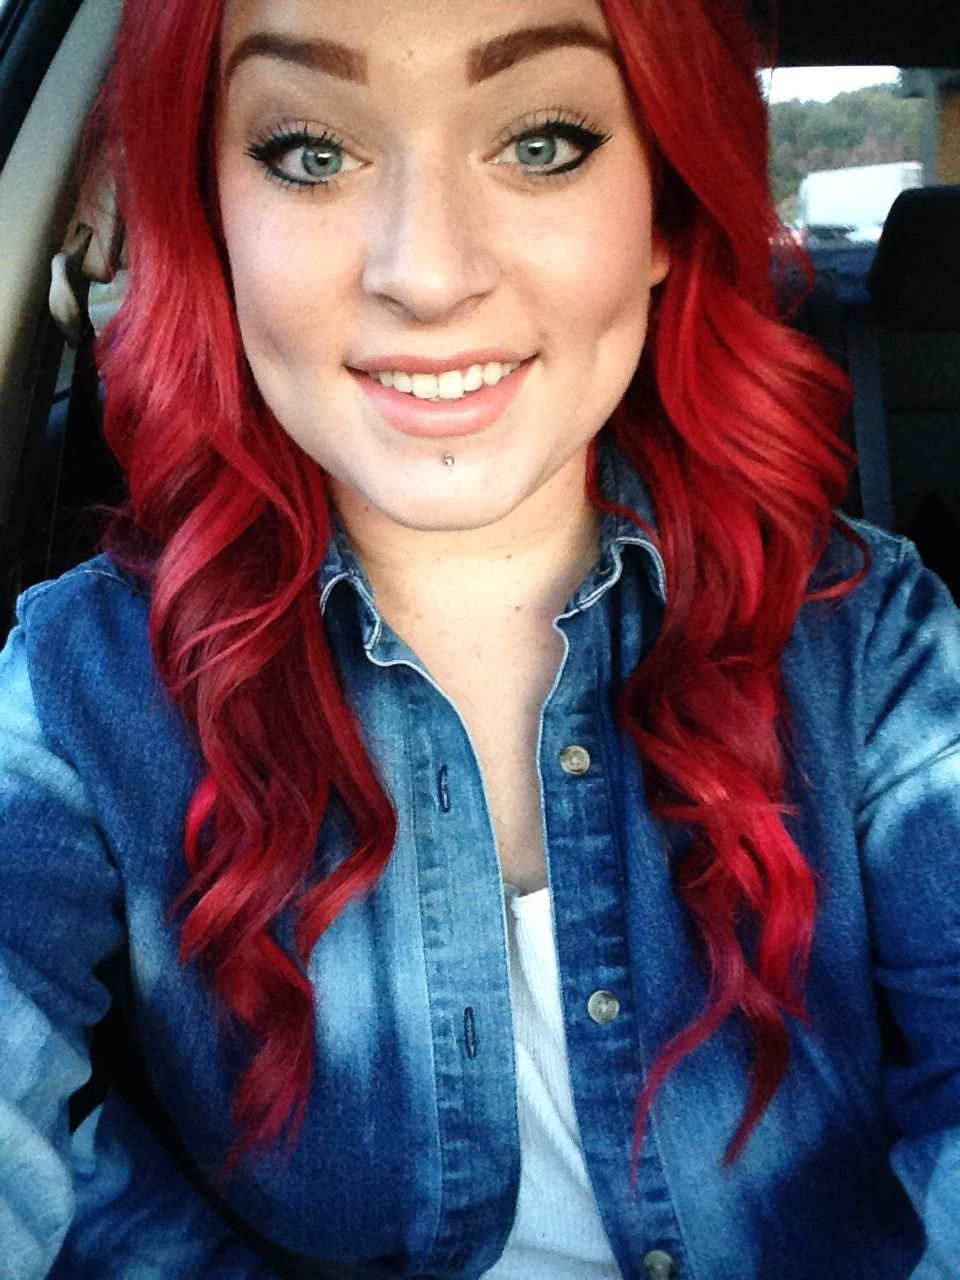 long red hair bright labret